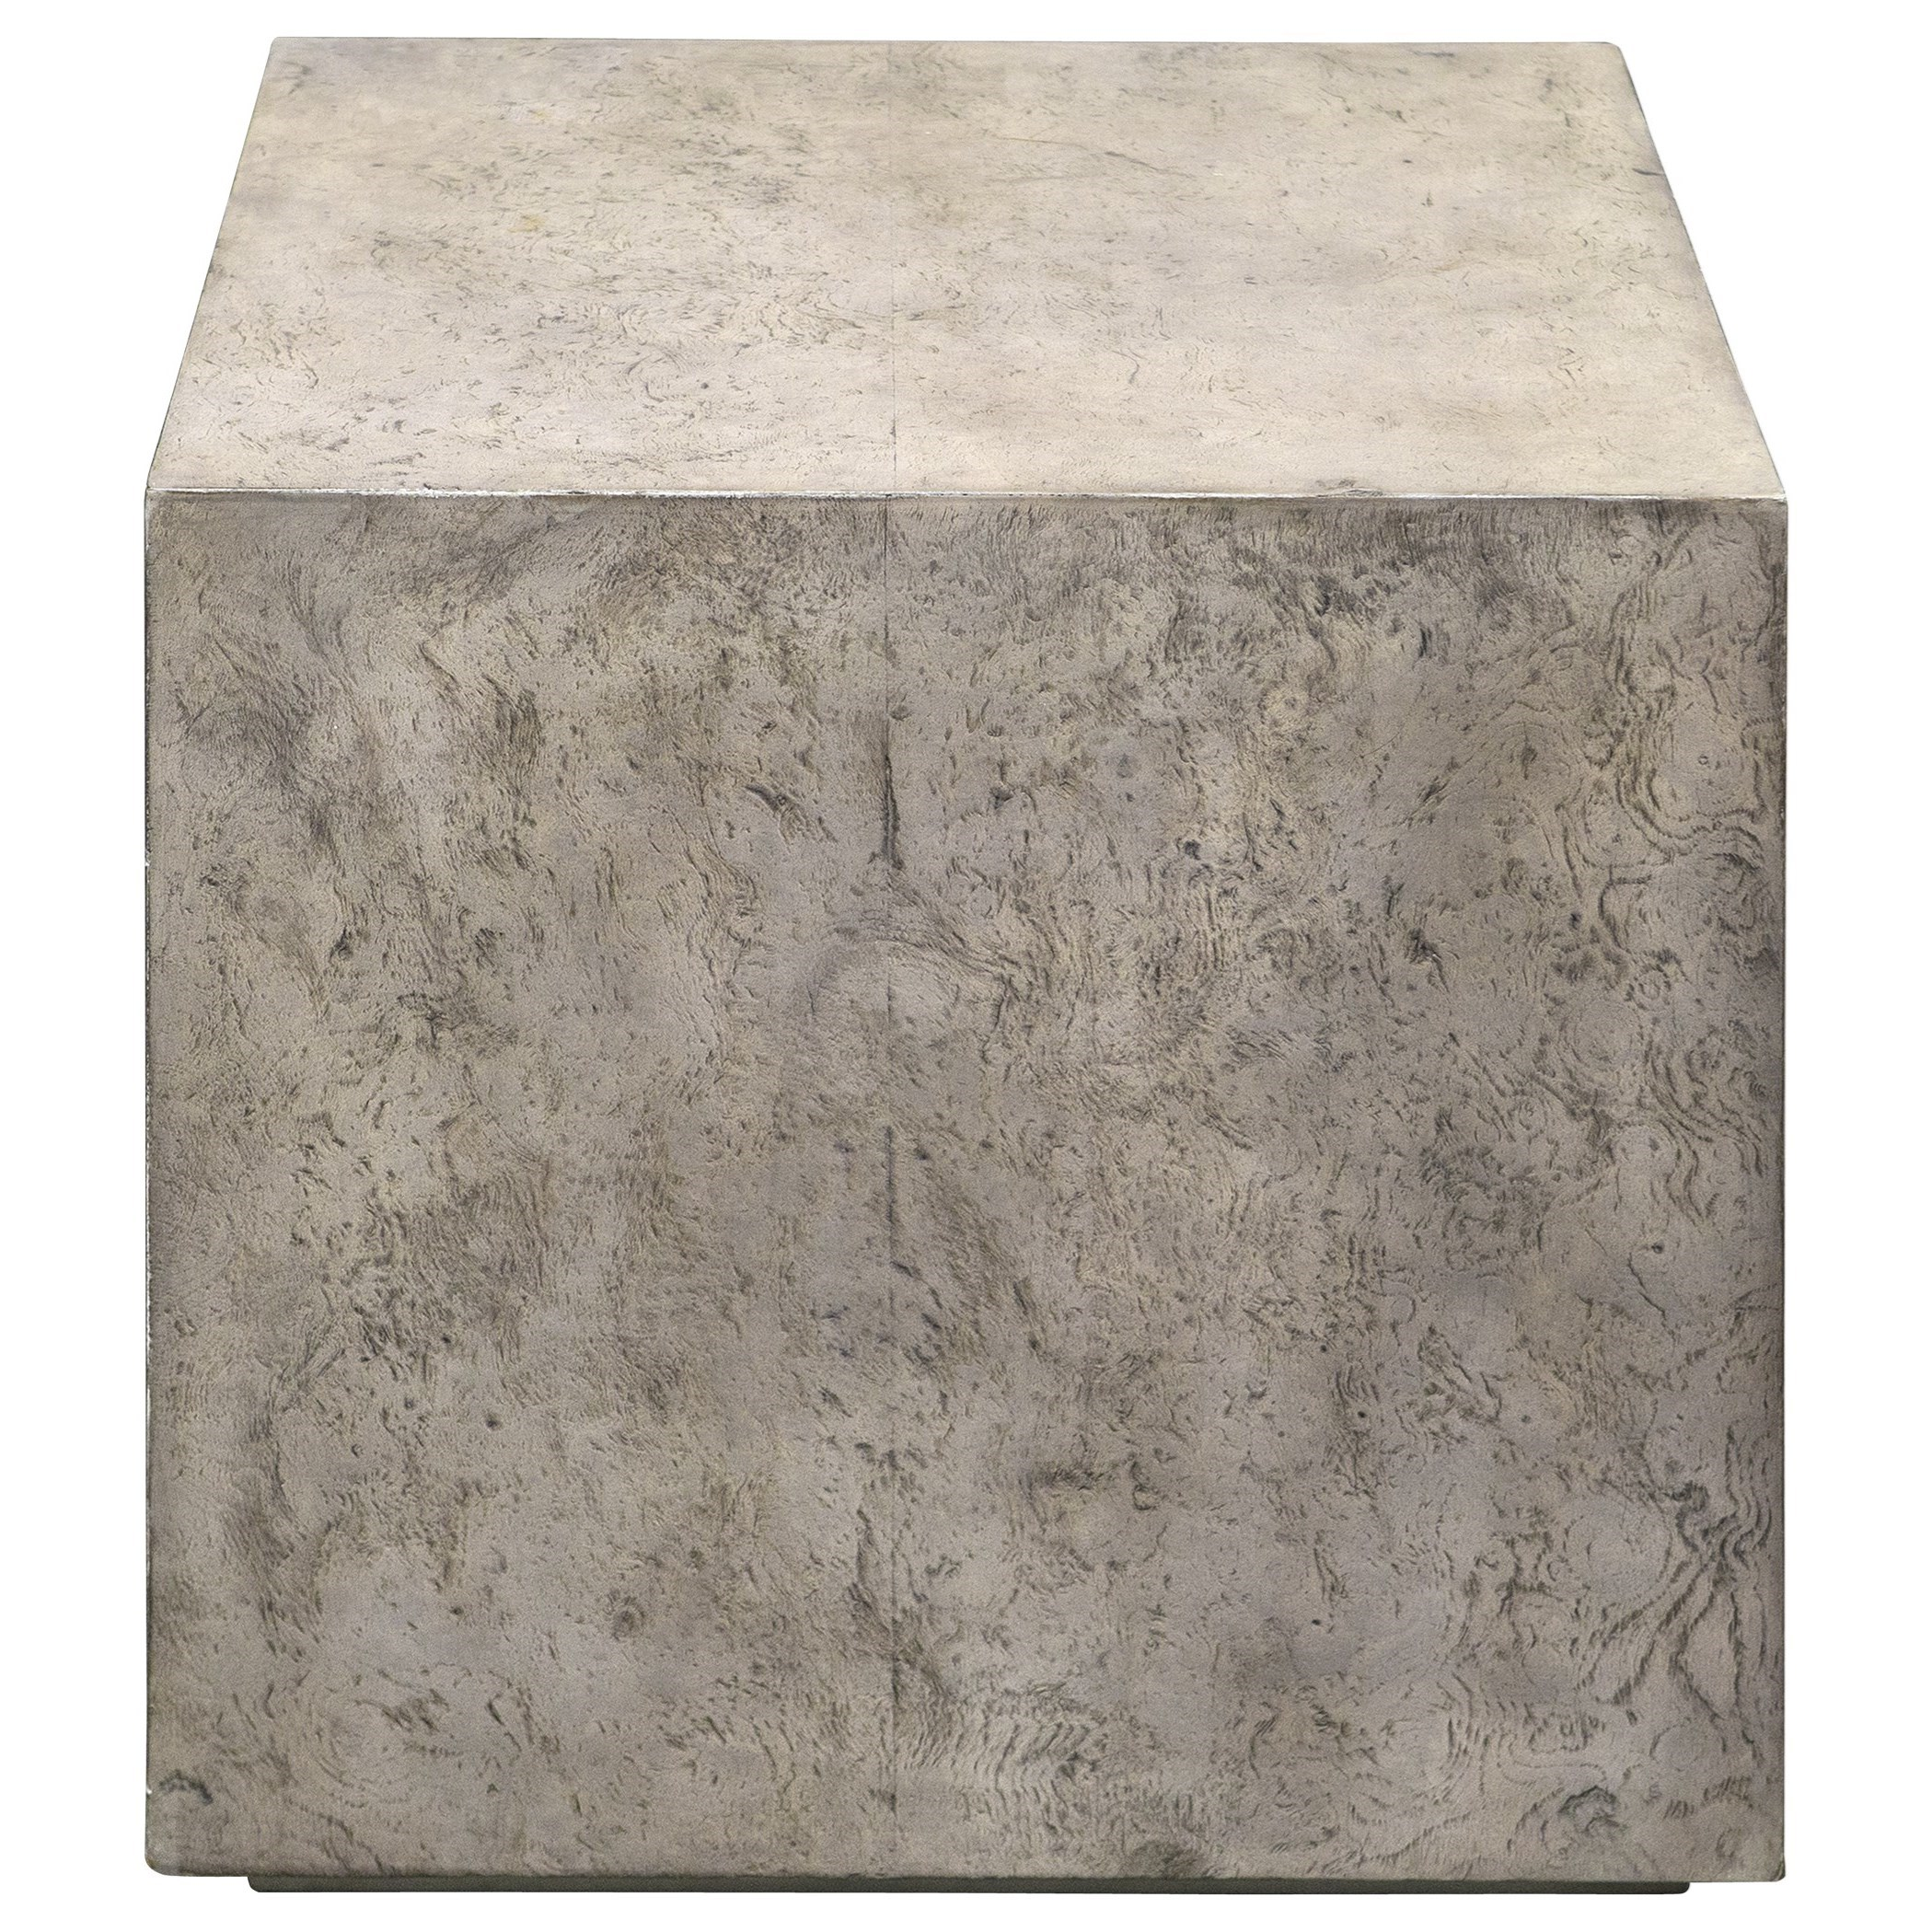 Accent Furniture - Occasional Tables Kioni Gray Cube Table by Uttermost at Upper Room Home Furnishings